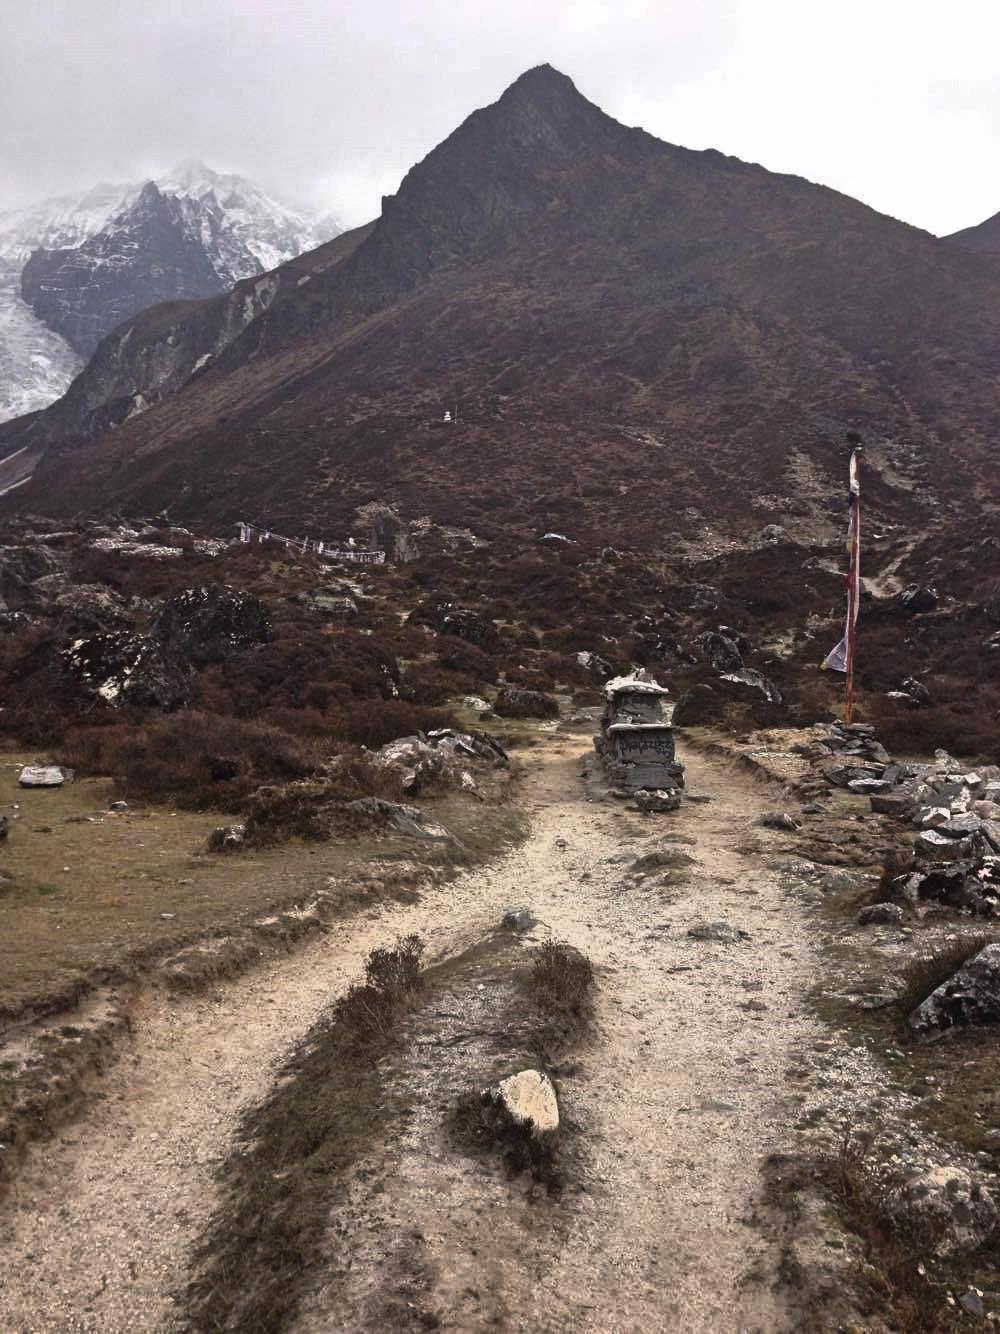 Langtang_Nature_April_2016_Adventure_Alternative_Nepal.jpg